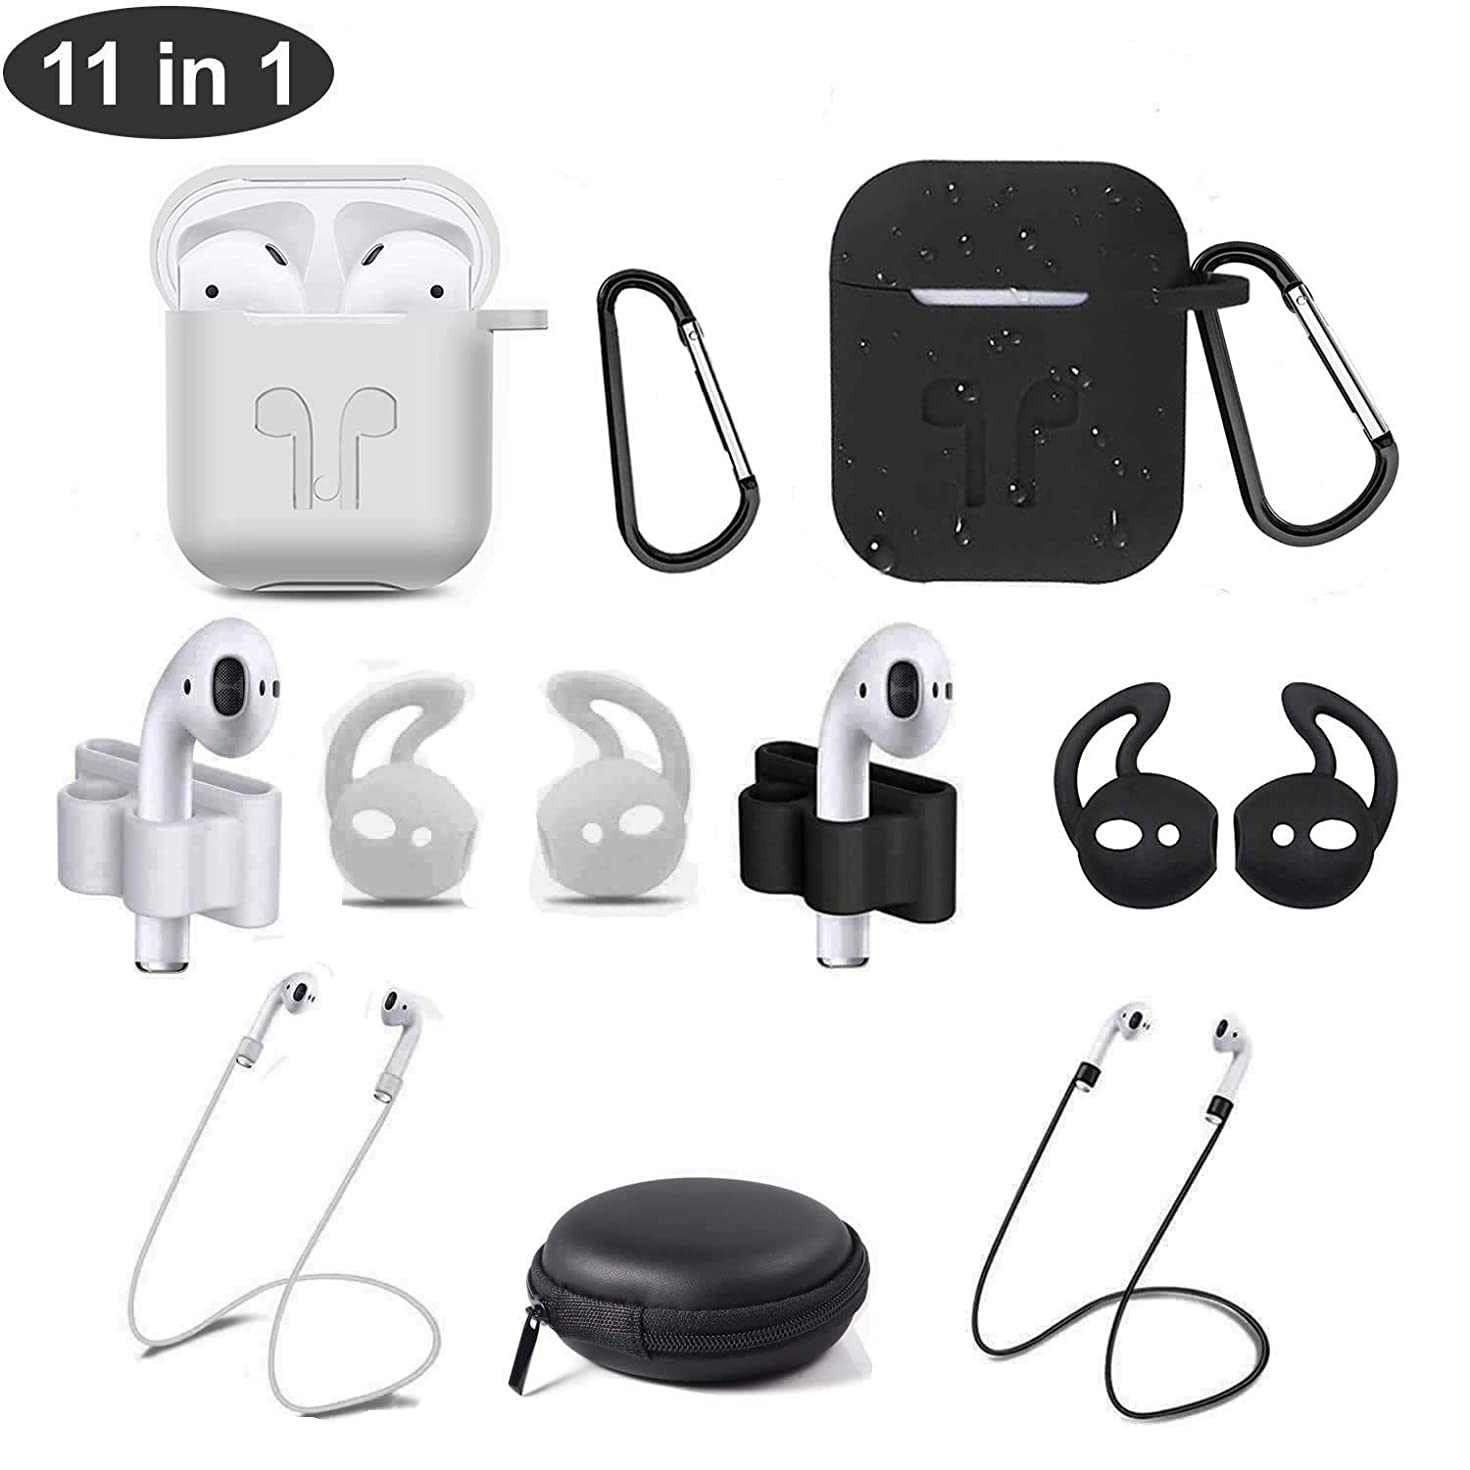 Airpods Case,Airpods Accessories Earphone Storage Bag Carrying Cases Kit,11 in 1 Waterproof Protective Silicone Cover,with Anti-Lost Airpods Strap/Keychain/Airpods Watch Band Holder (Black and White)